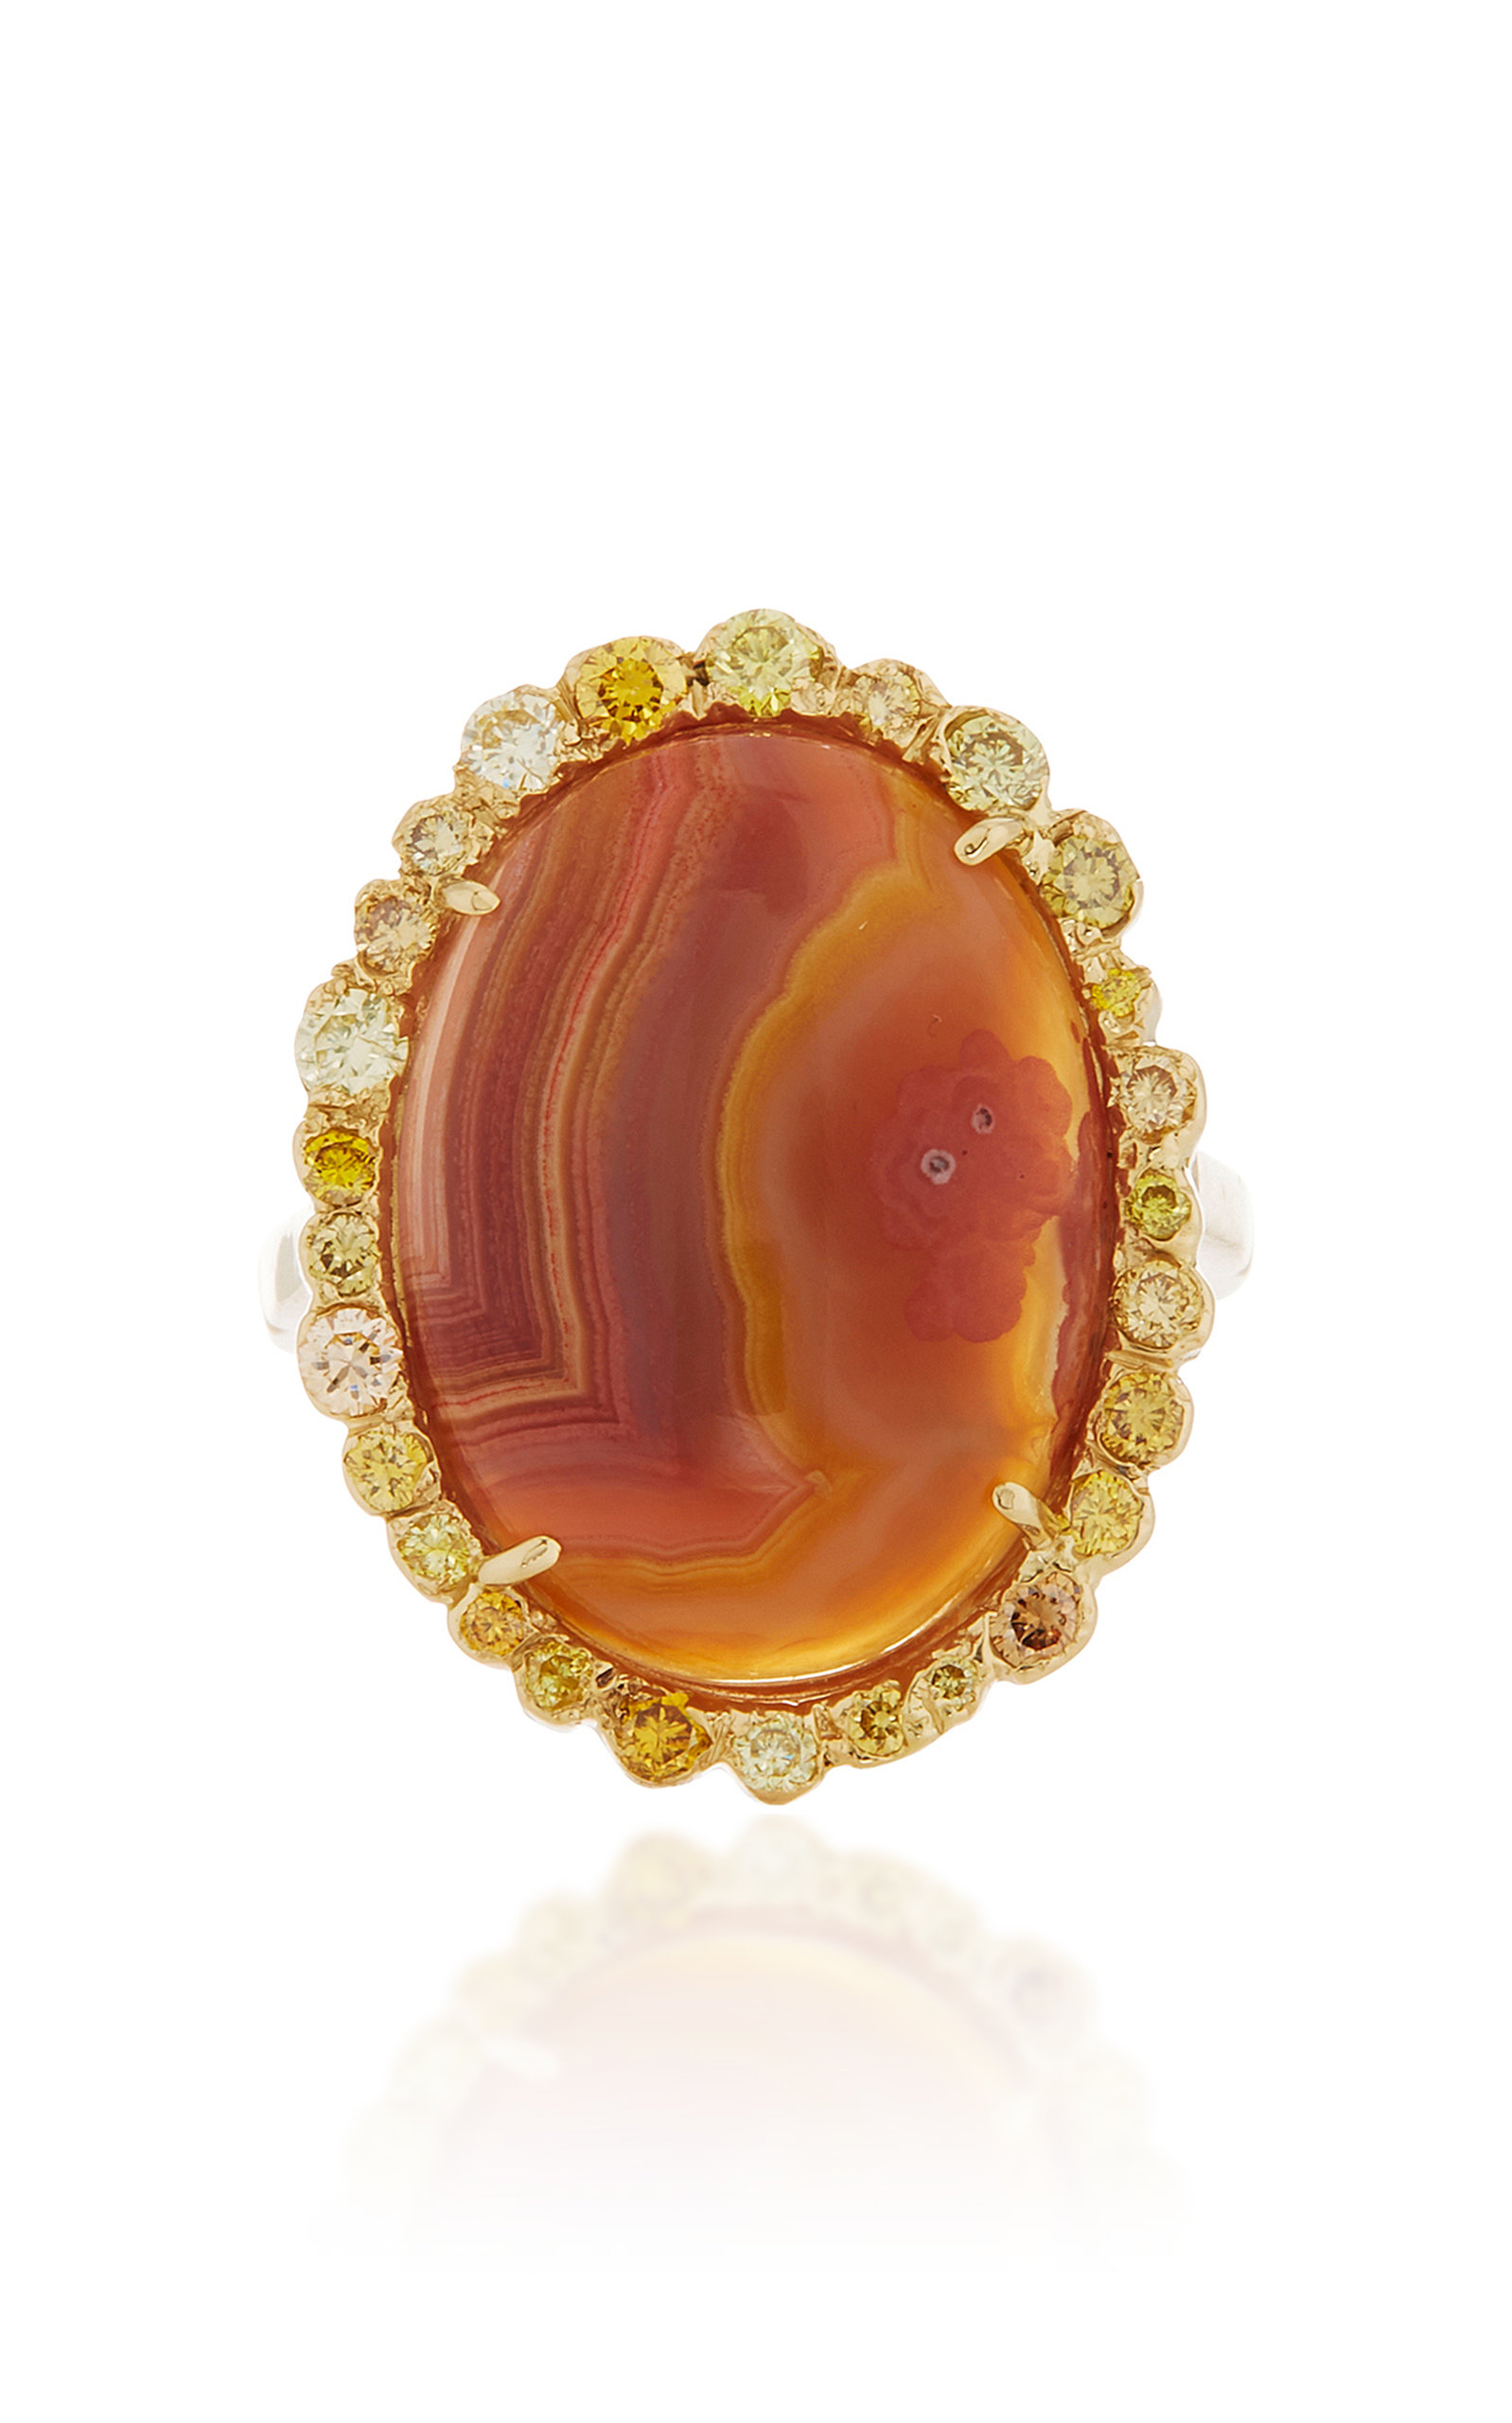 KIMBERLY MCDONALD ONE-OF-A-KIND AGATE RING WITH NATURAL COLORED DIAMONDS SET IN 18K YELLOW GOLD